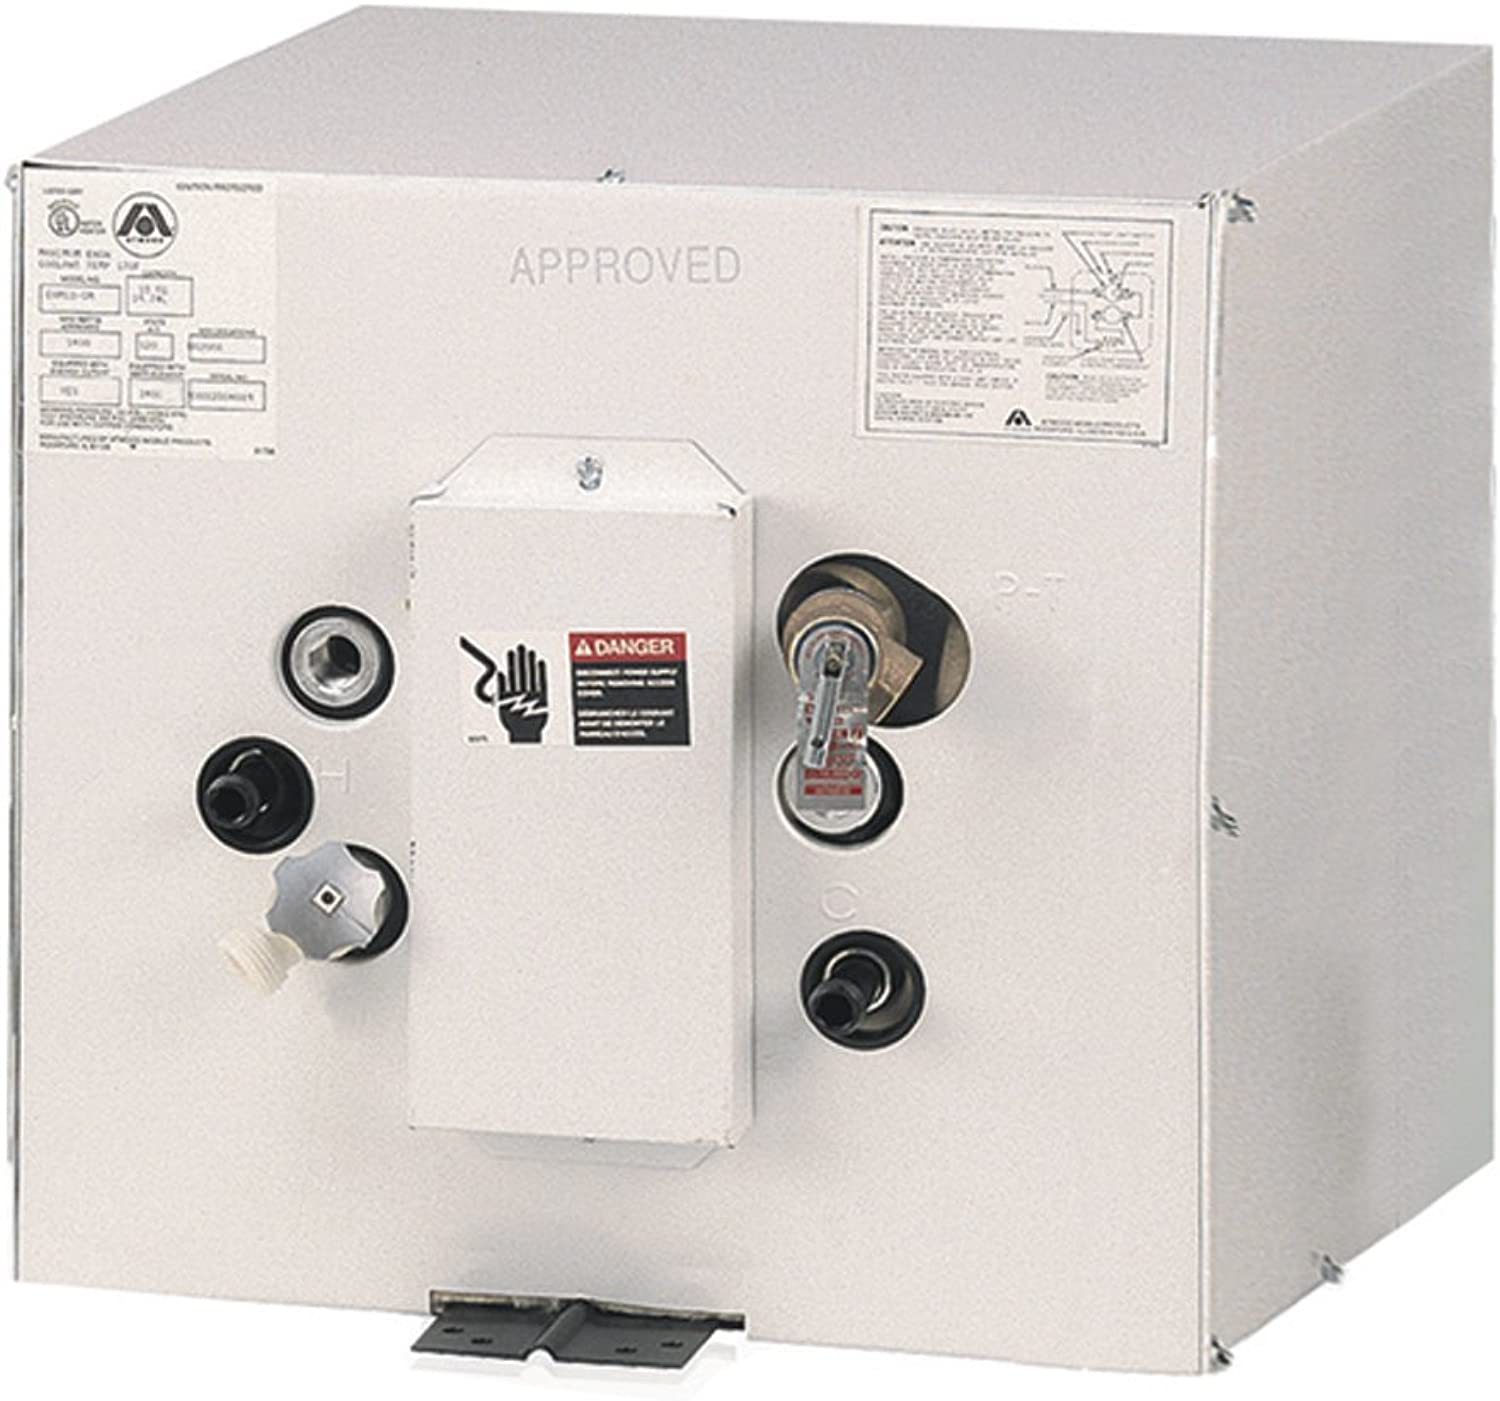 Atwood EHM11220 Electric Water Heater w Heat Exchanger  11Gal  220V (35886)